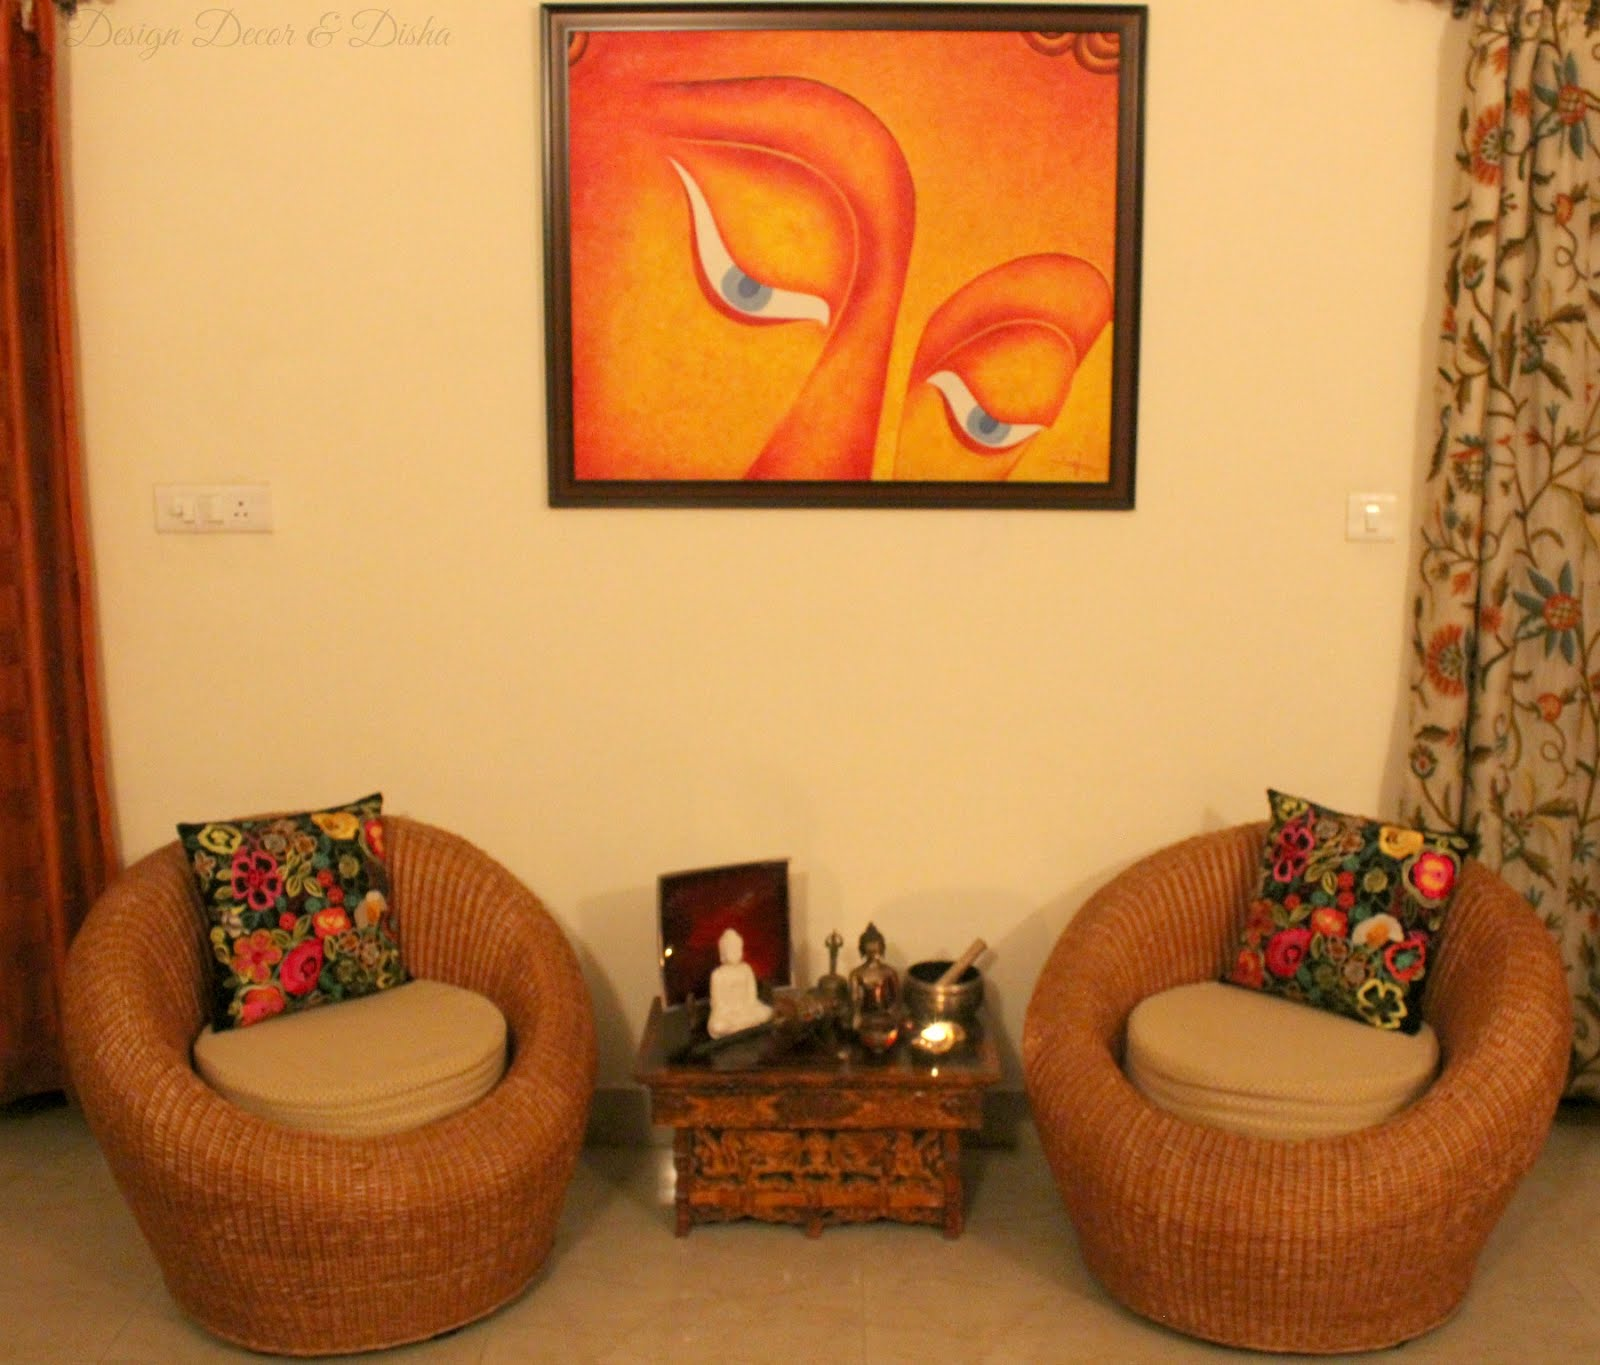 Design decor disha an indian design decor blog home for Home furnishings and decor